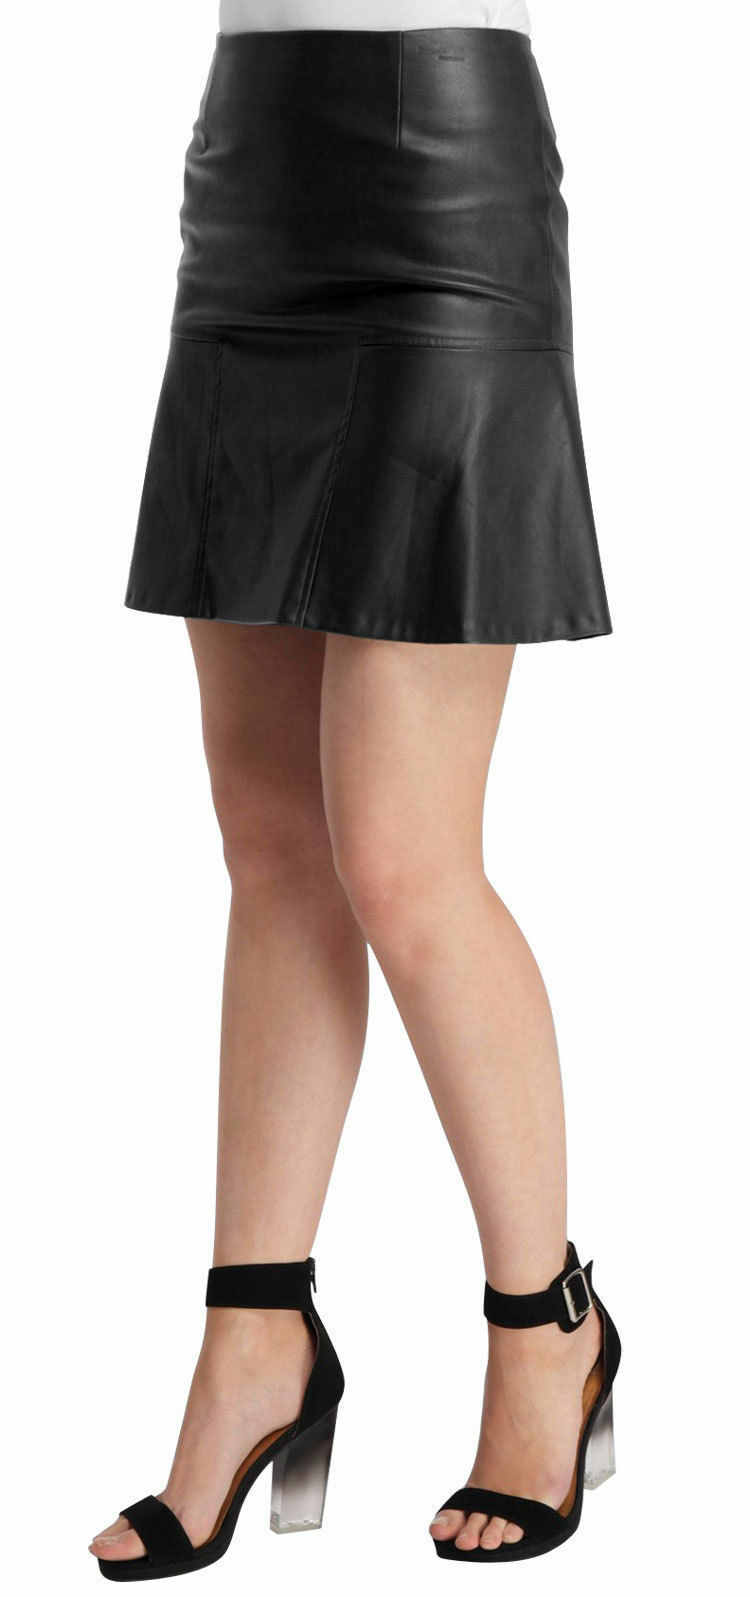 Women's Genuine Leather Skirts Girls Club Party Wear Hot Micro Mini Flippy Skirt